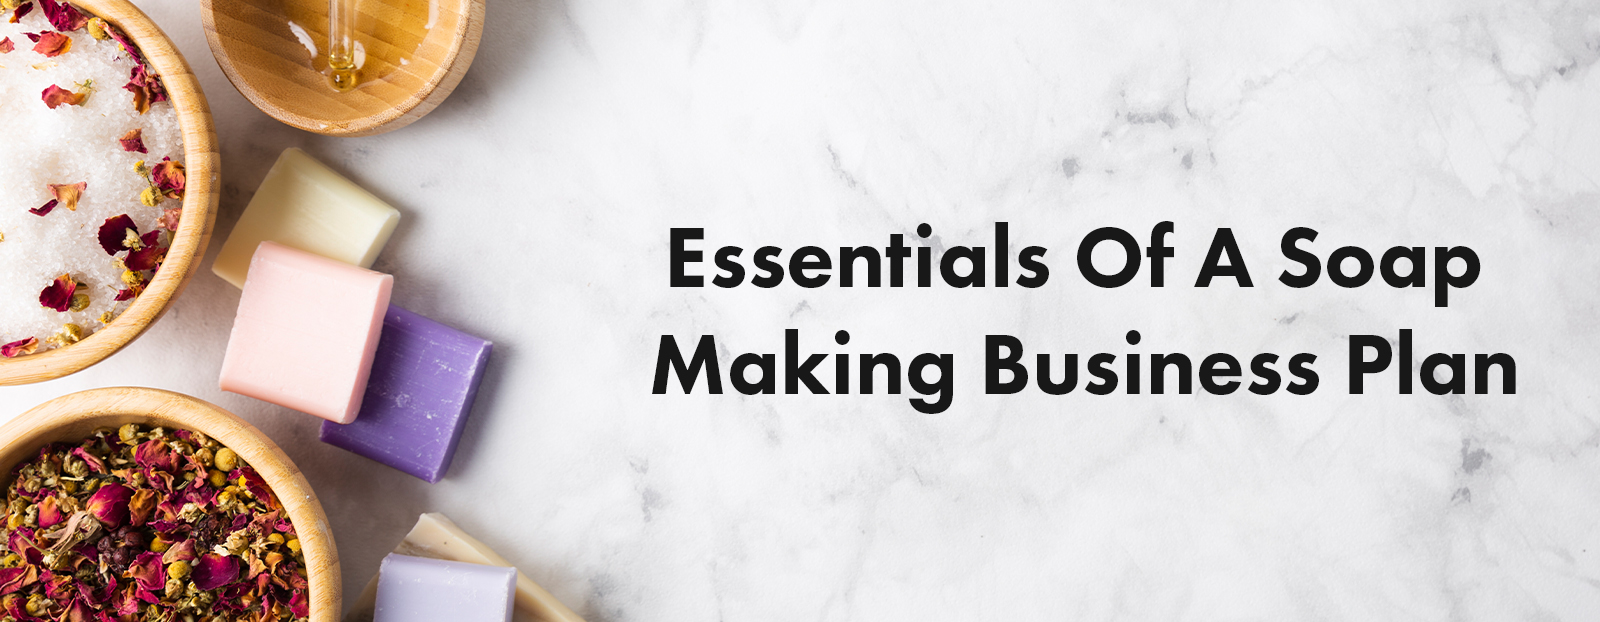 Essentials Of A Soap Making Business Plan